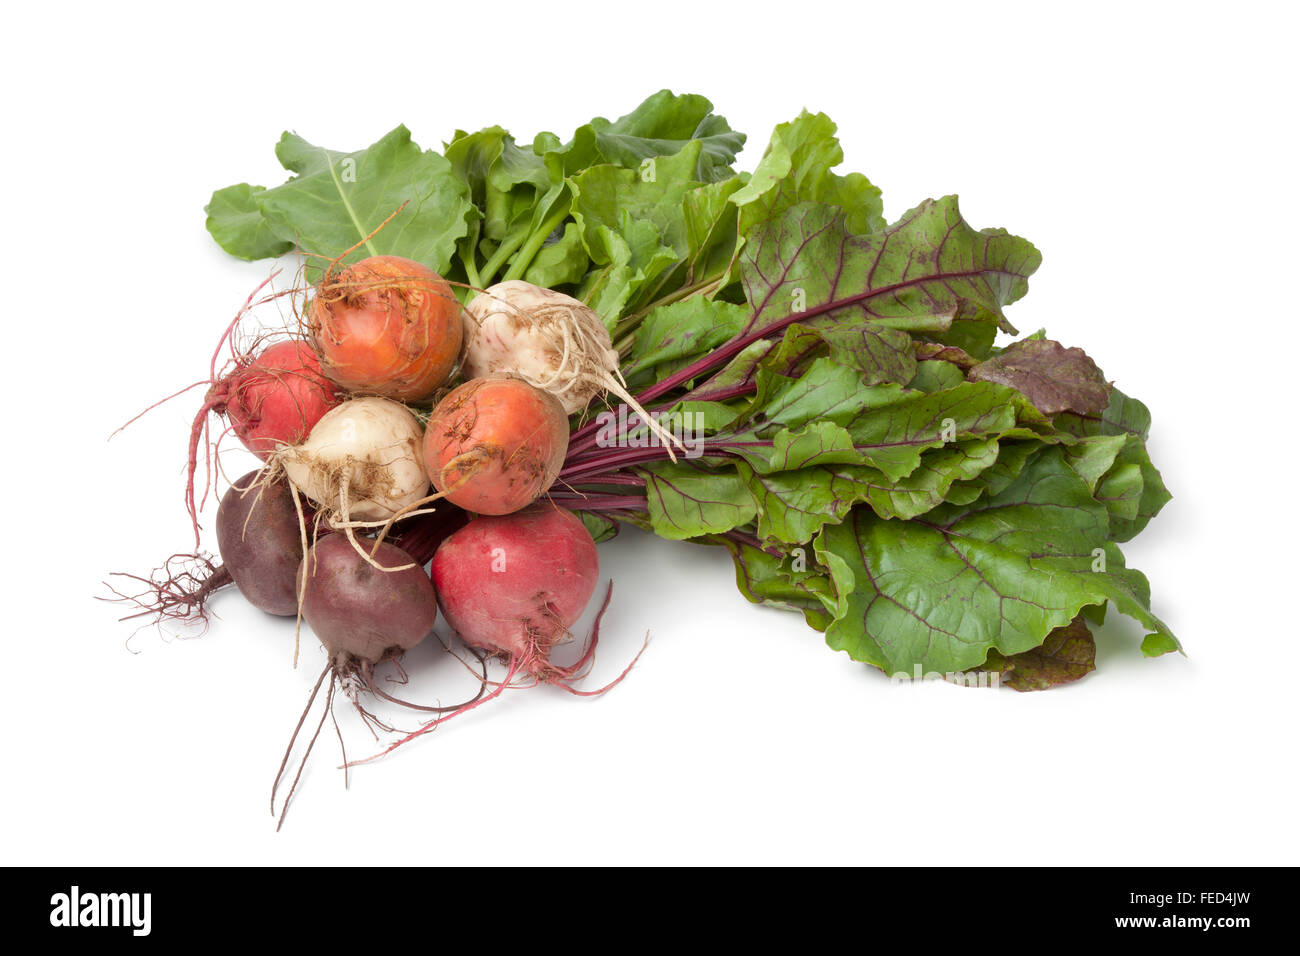 Bunch of fresh mixed color heirloom beets on white background Stock Photo